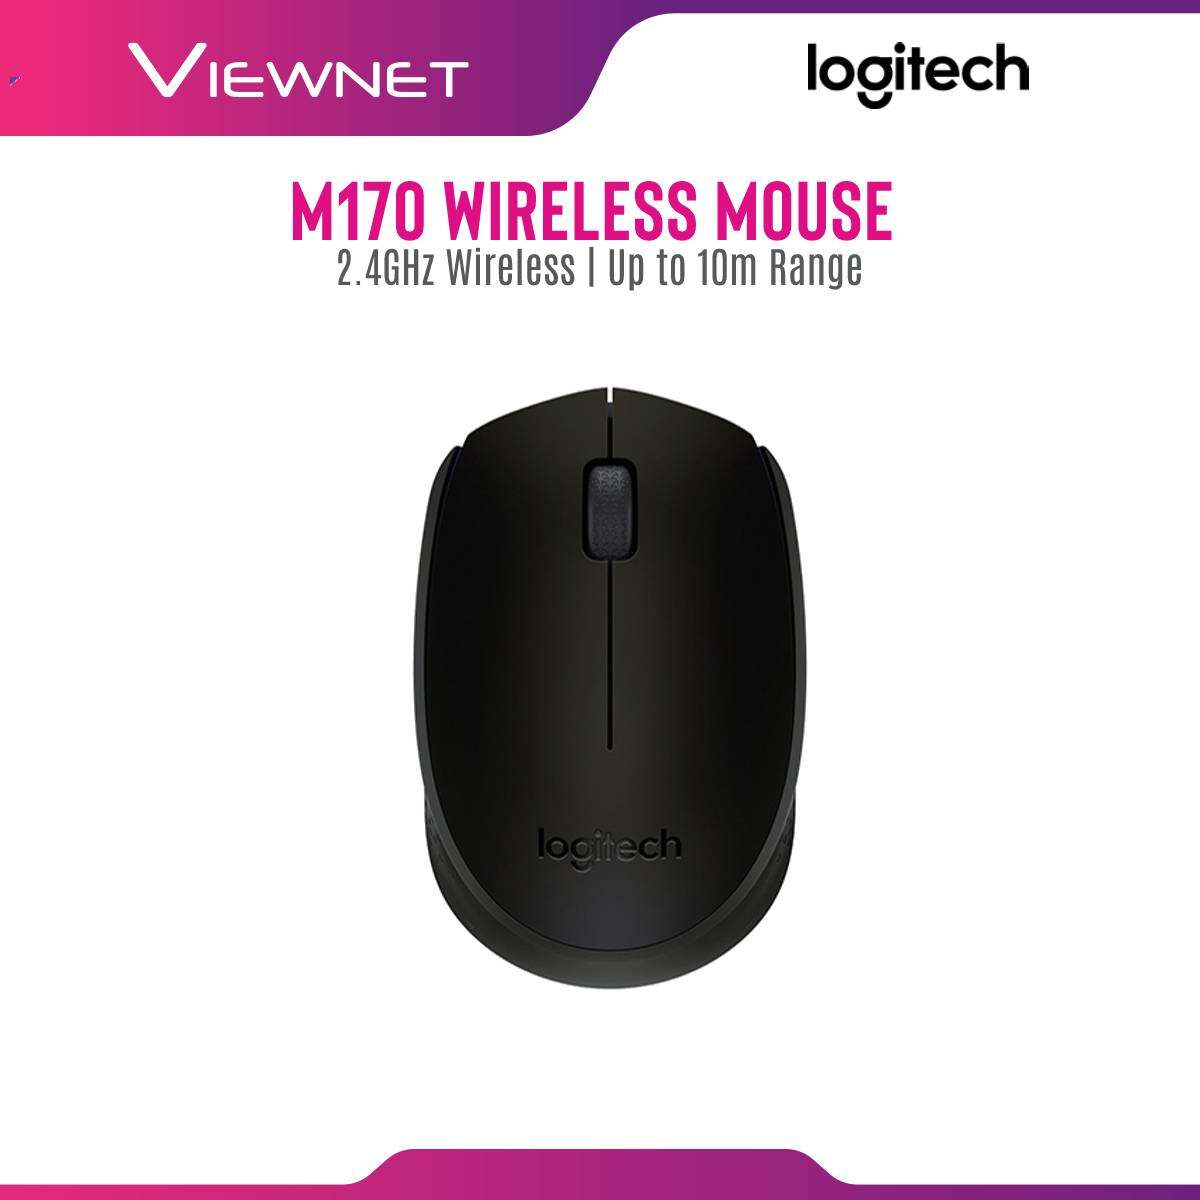 Logitech M170 Wireless Mouse with Red Laser, 2.4GHz Wireless Connection, 12-Month Battery Life, Up To 10M Range, Plug and Play Wireless Receiver